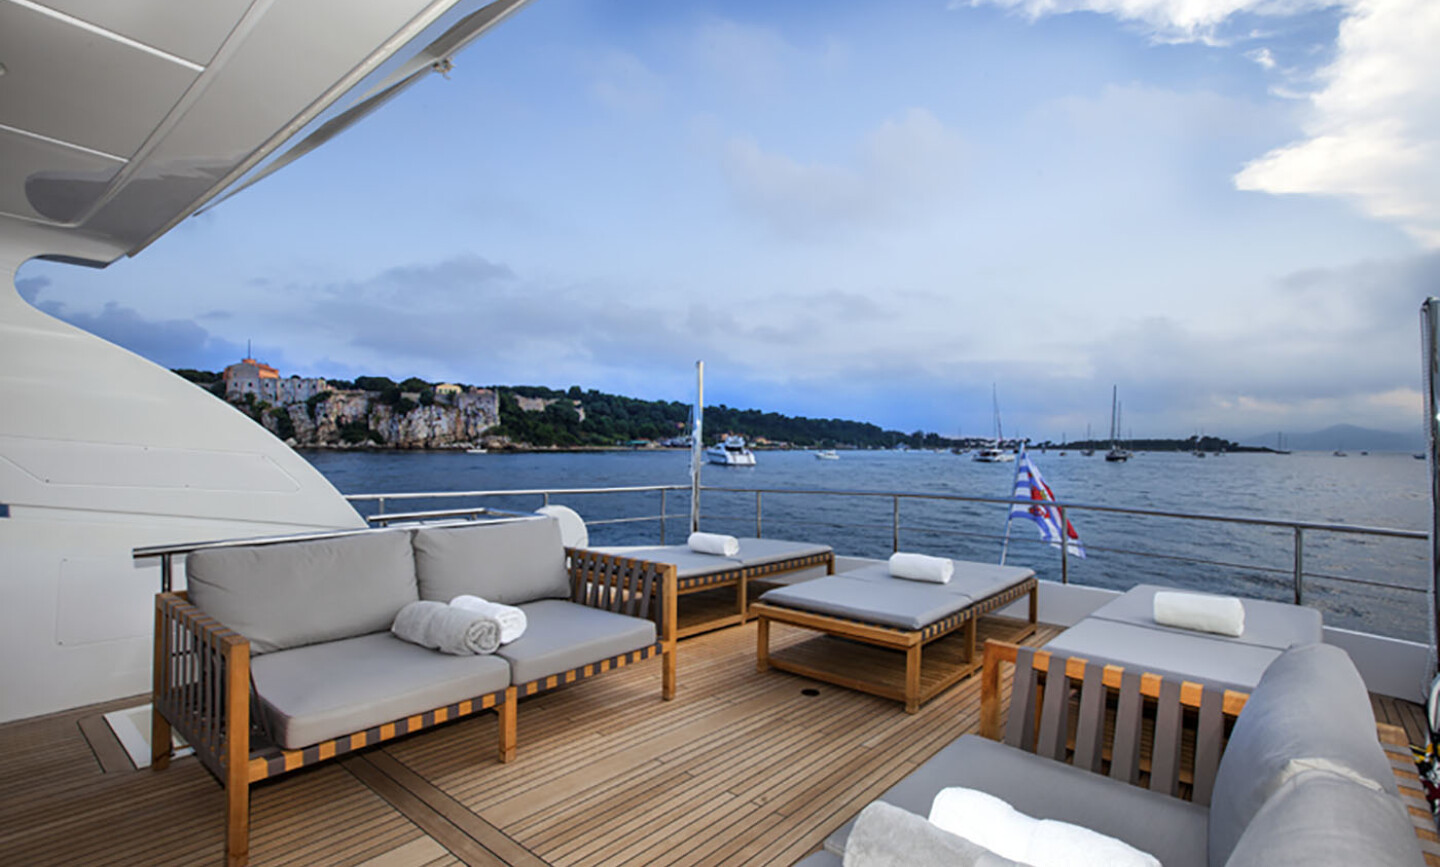 Sud yacht for Sale 6